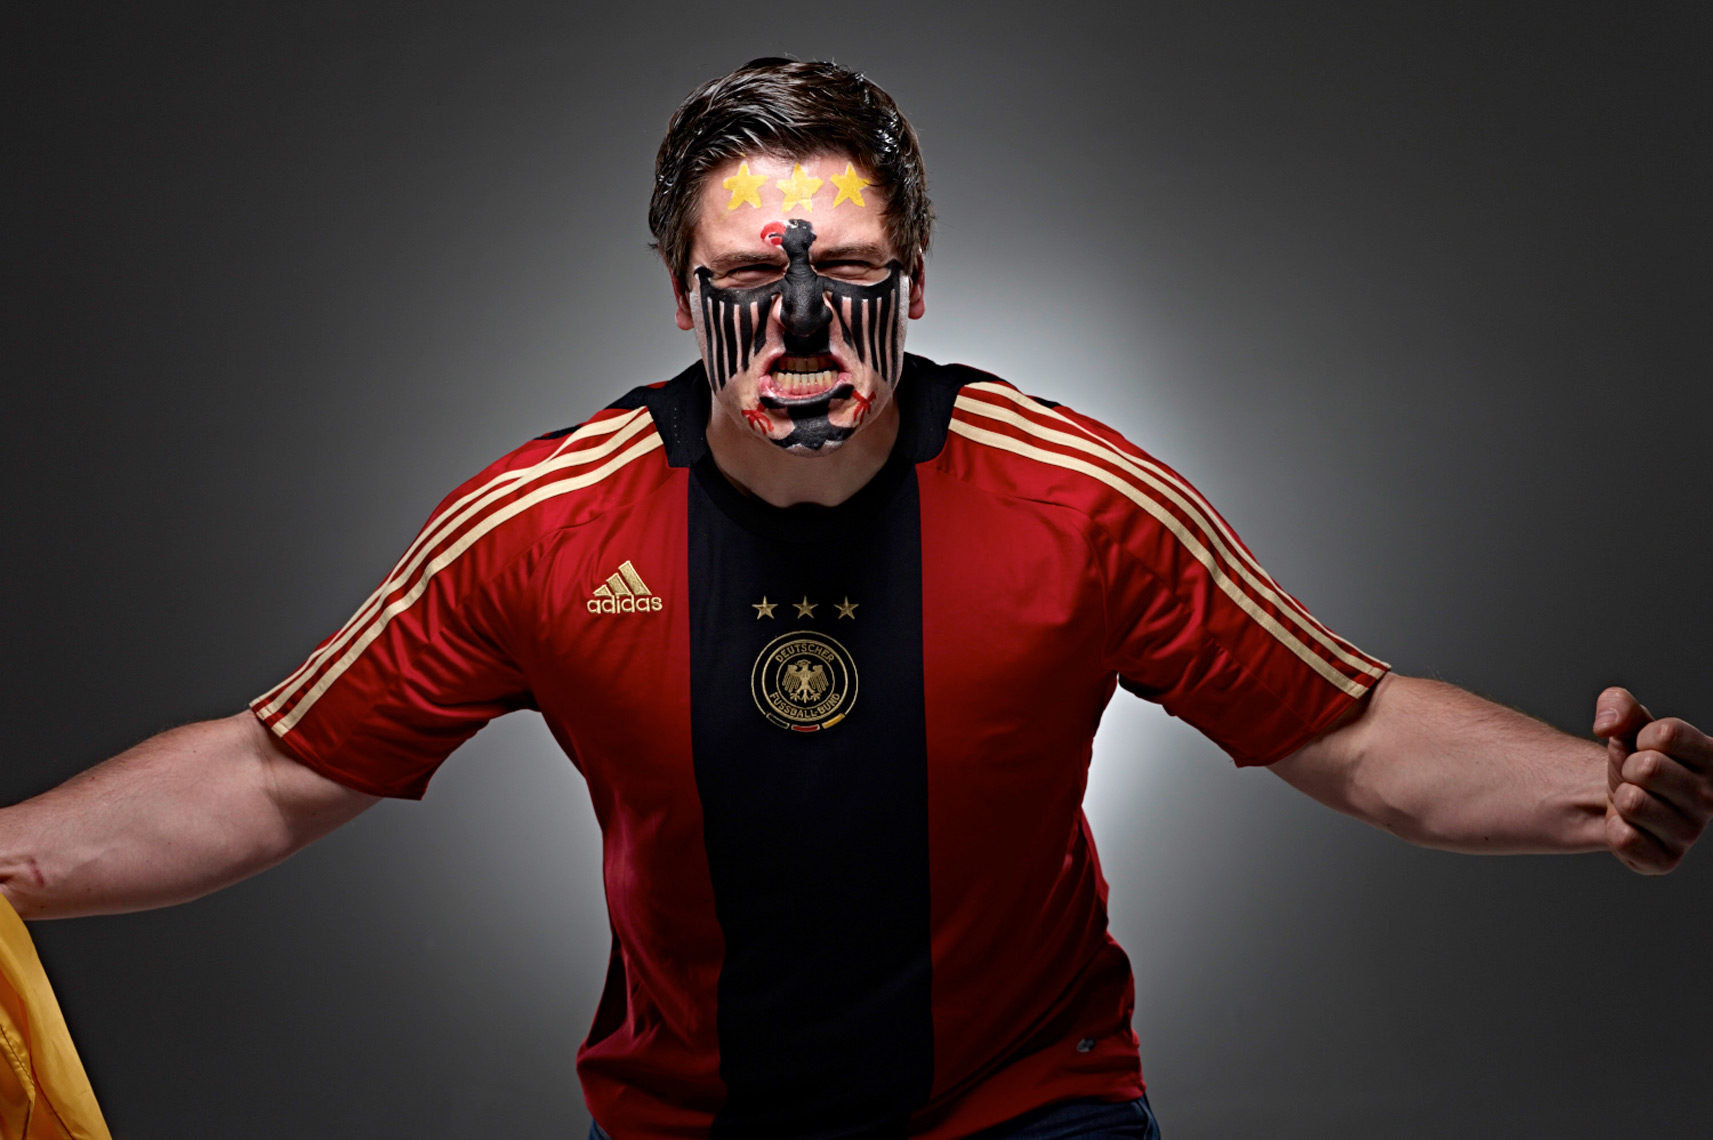 German Footbol soccer fan face paint photo by Monte Isom